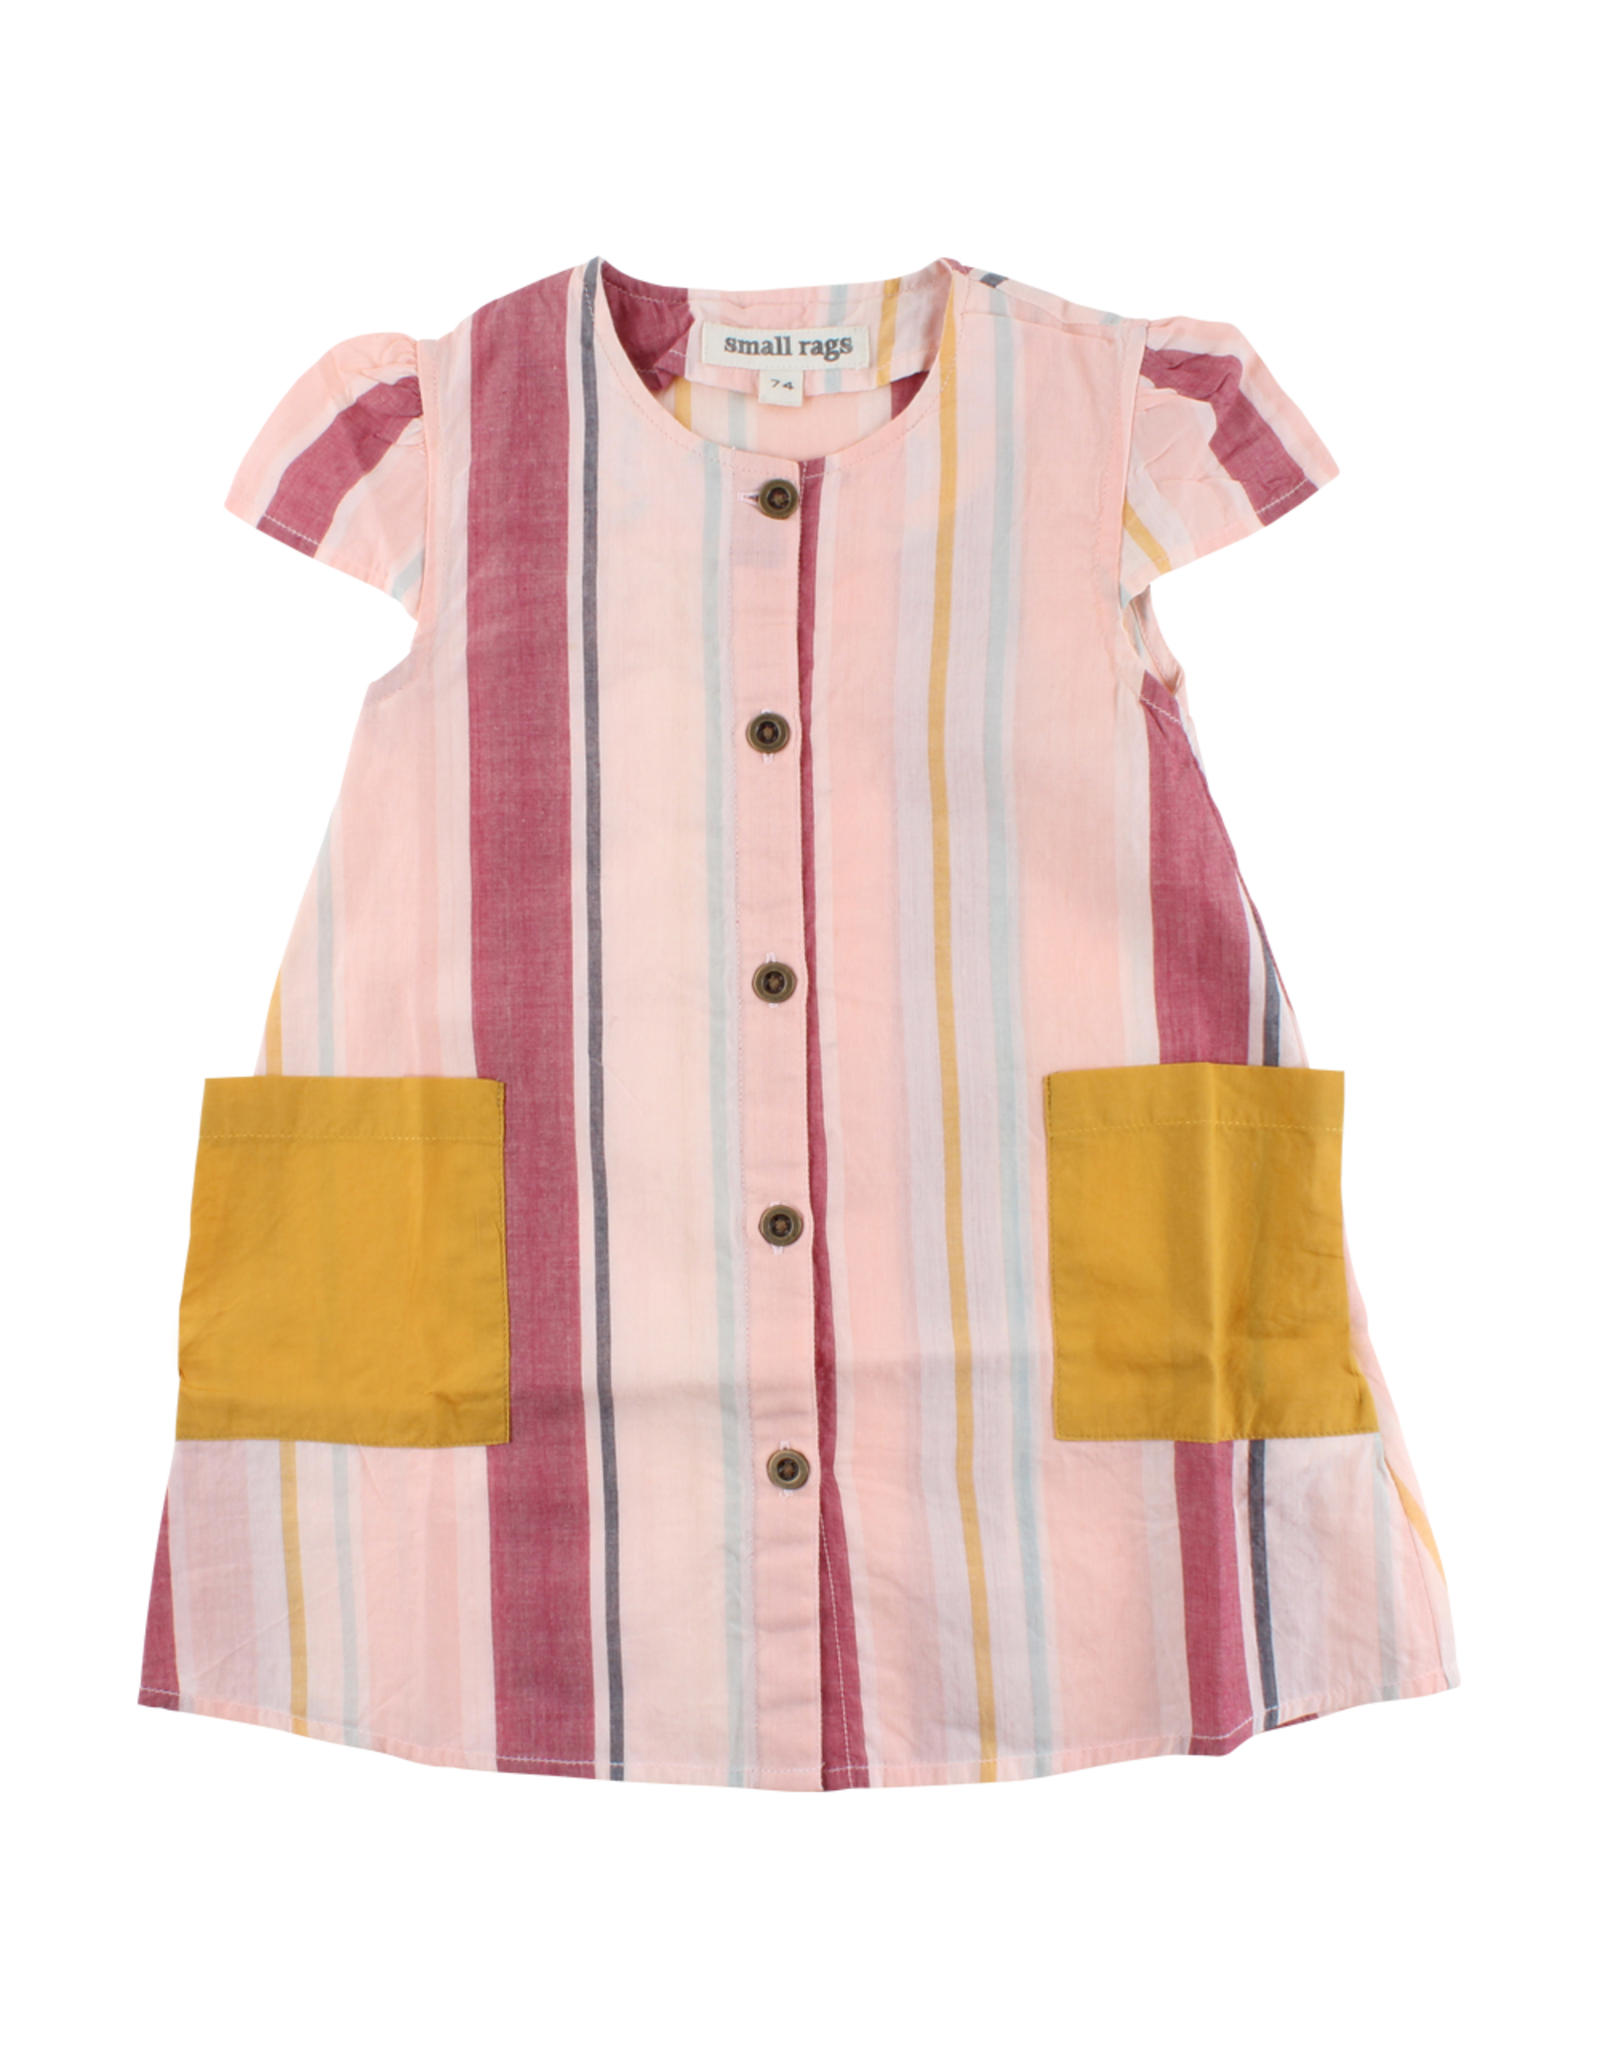 Small Rags Small Rags Short Sleeve Dress Pearl Blush